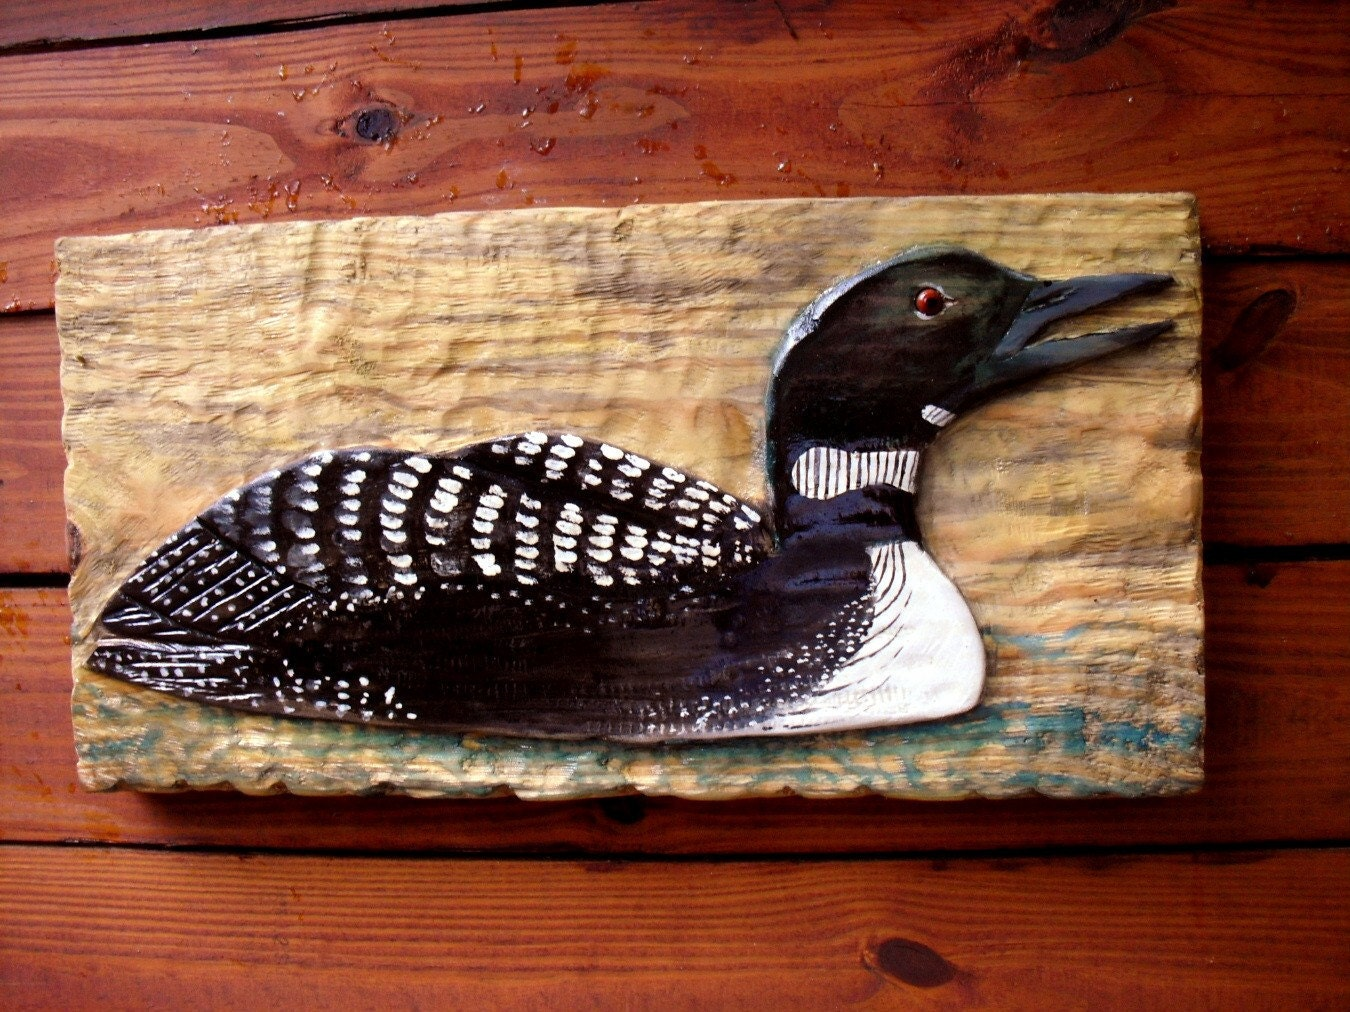 Related keywords suggestions for loon wood carving patterns